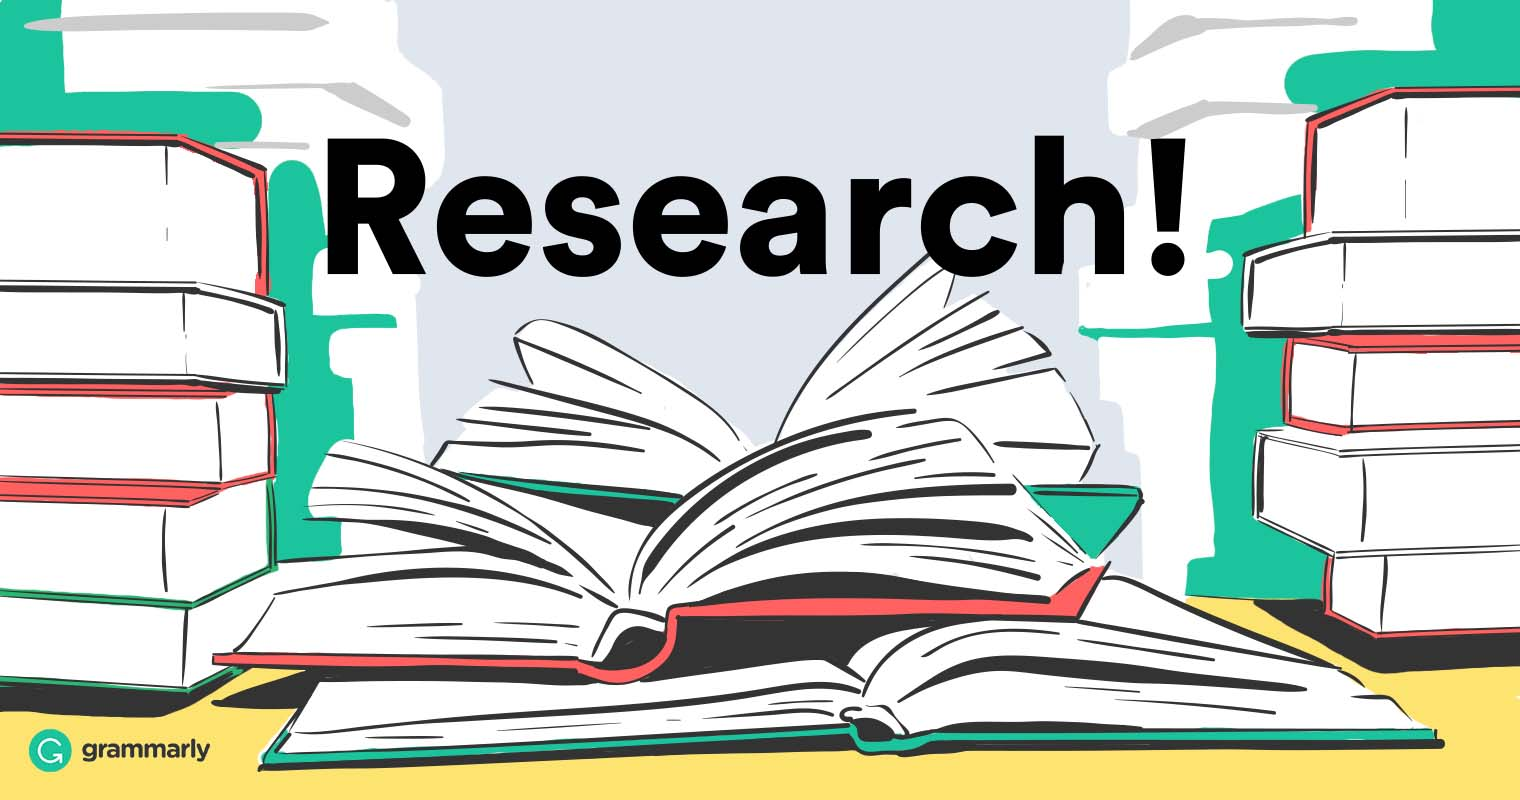 009 Research Paper Major Parts Imposing 5 Of Five Full